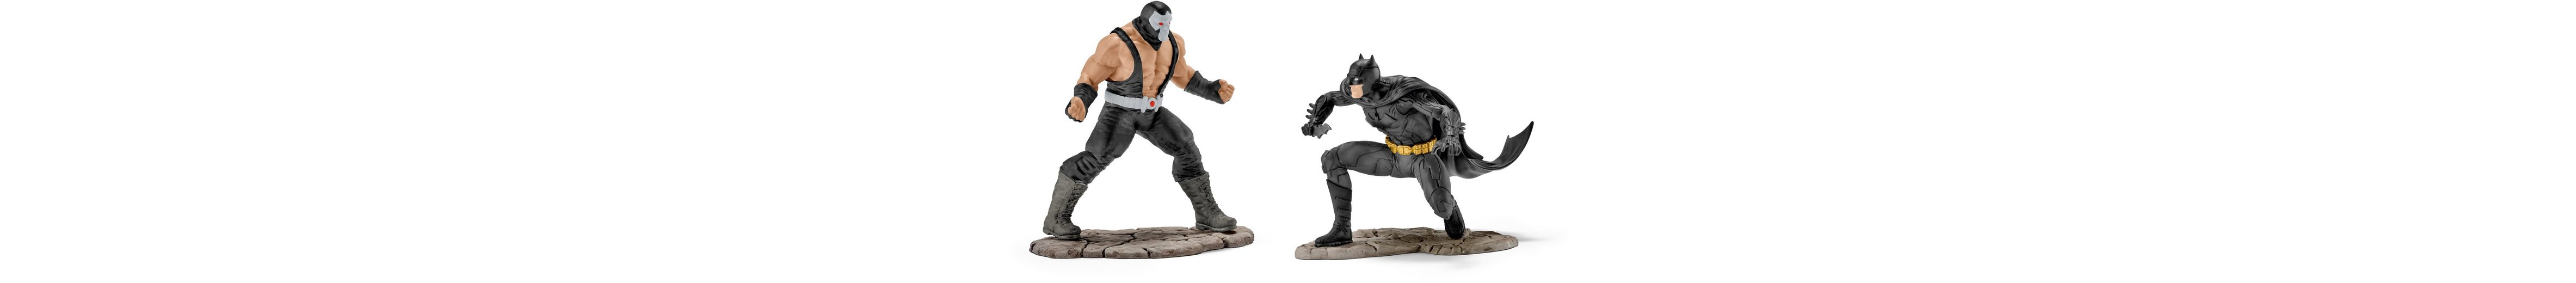 Schleich® Spielfiguren Set, »Justice League, Batman vs. Bane«